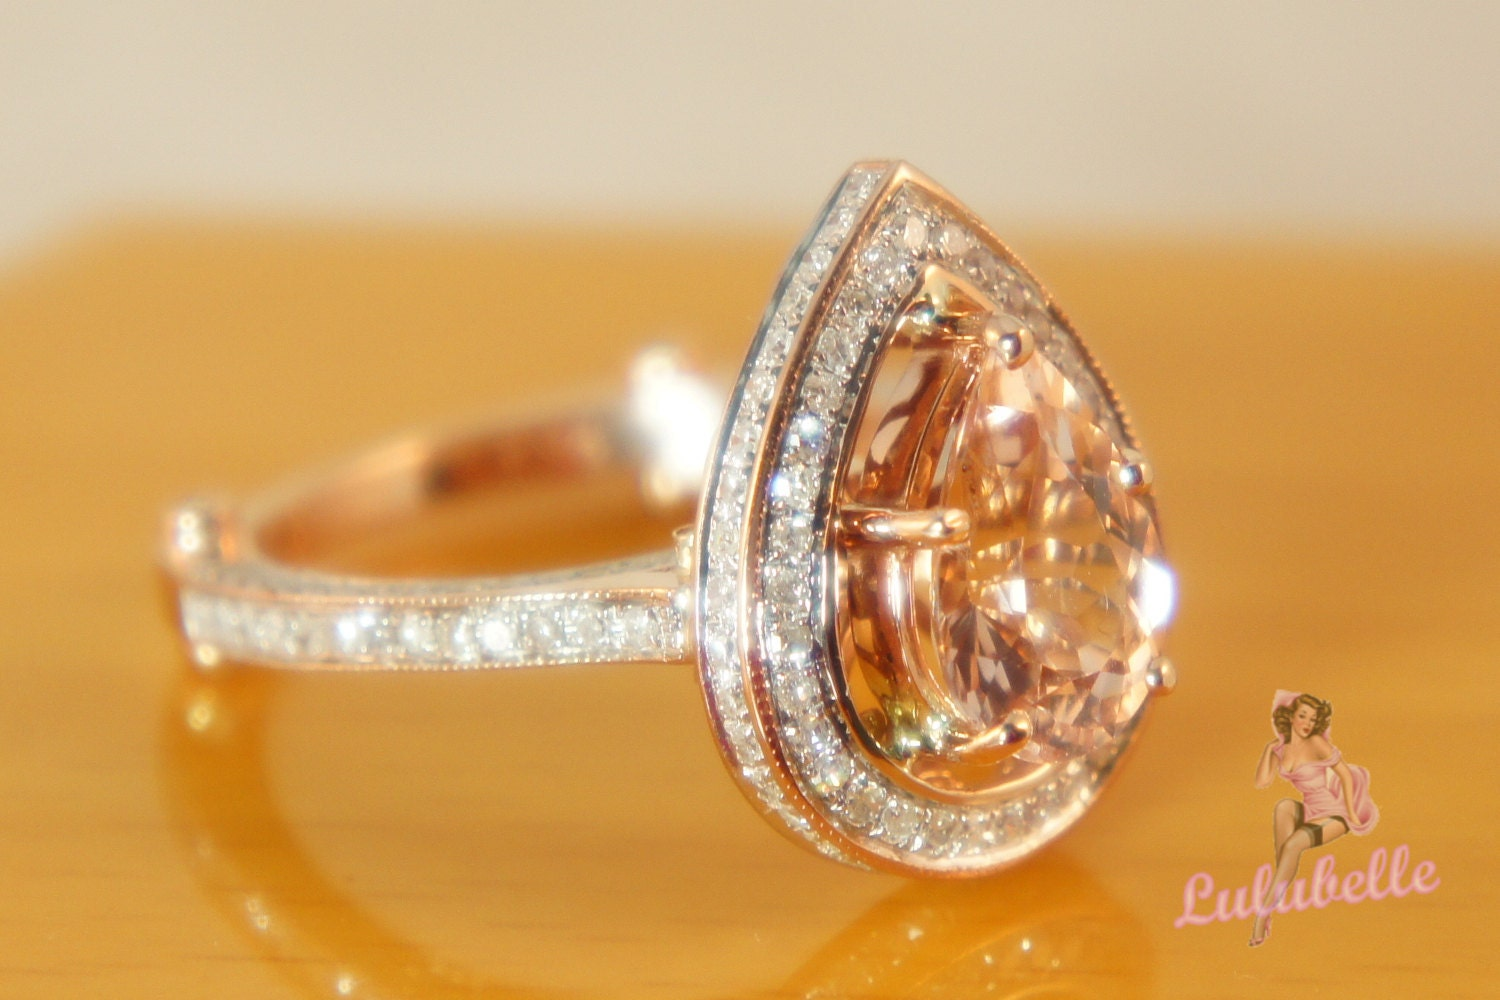 Deposit The Pear Alencon lace Sparkler - Morganite and diamond 14k rose gold engagement or wedding ring pave and milgrain